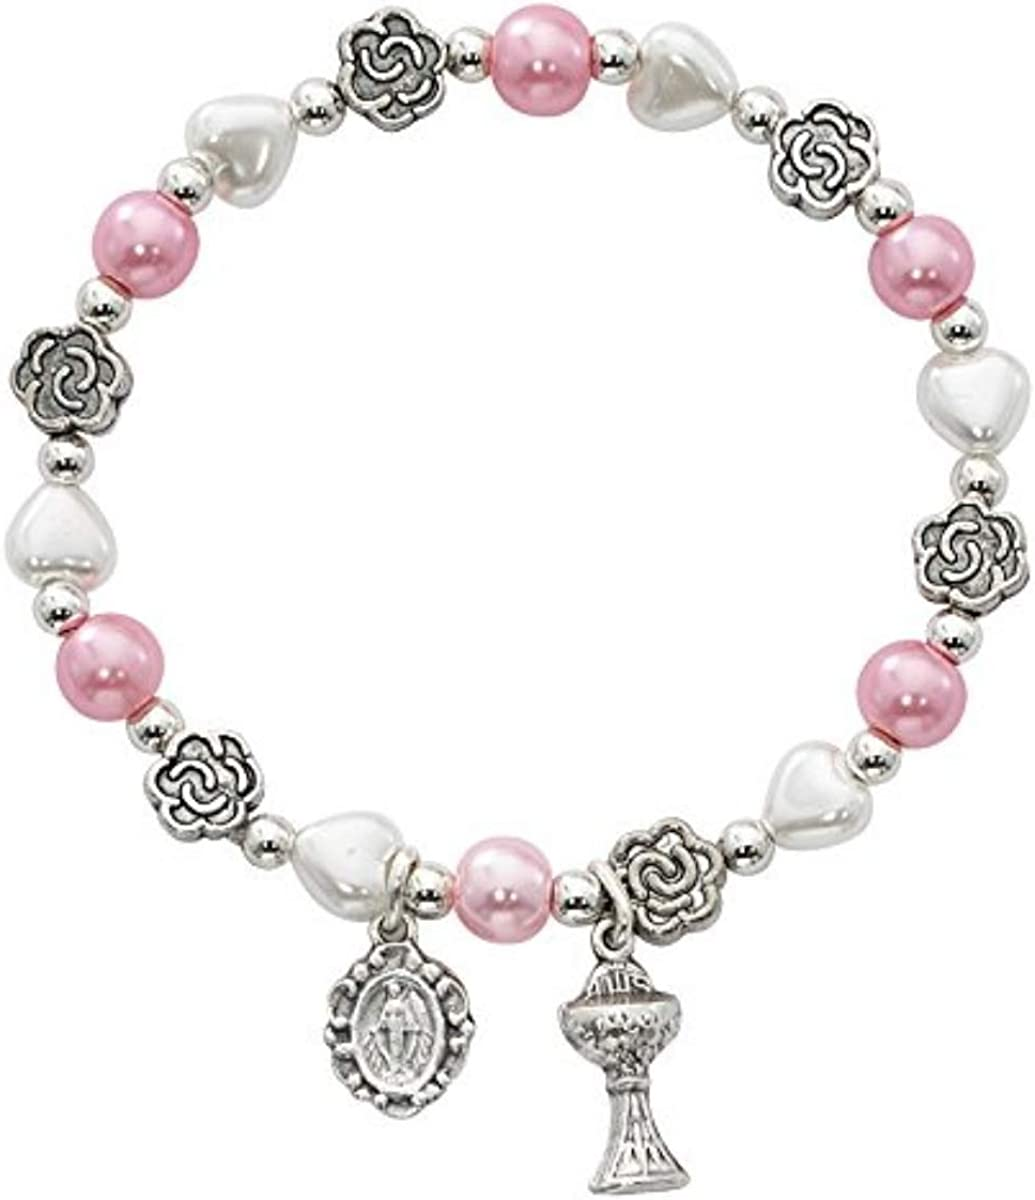 First Communion Pink and White Bead Heart Soldering Bracelet Fixed price for sale wi Flower